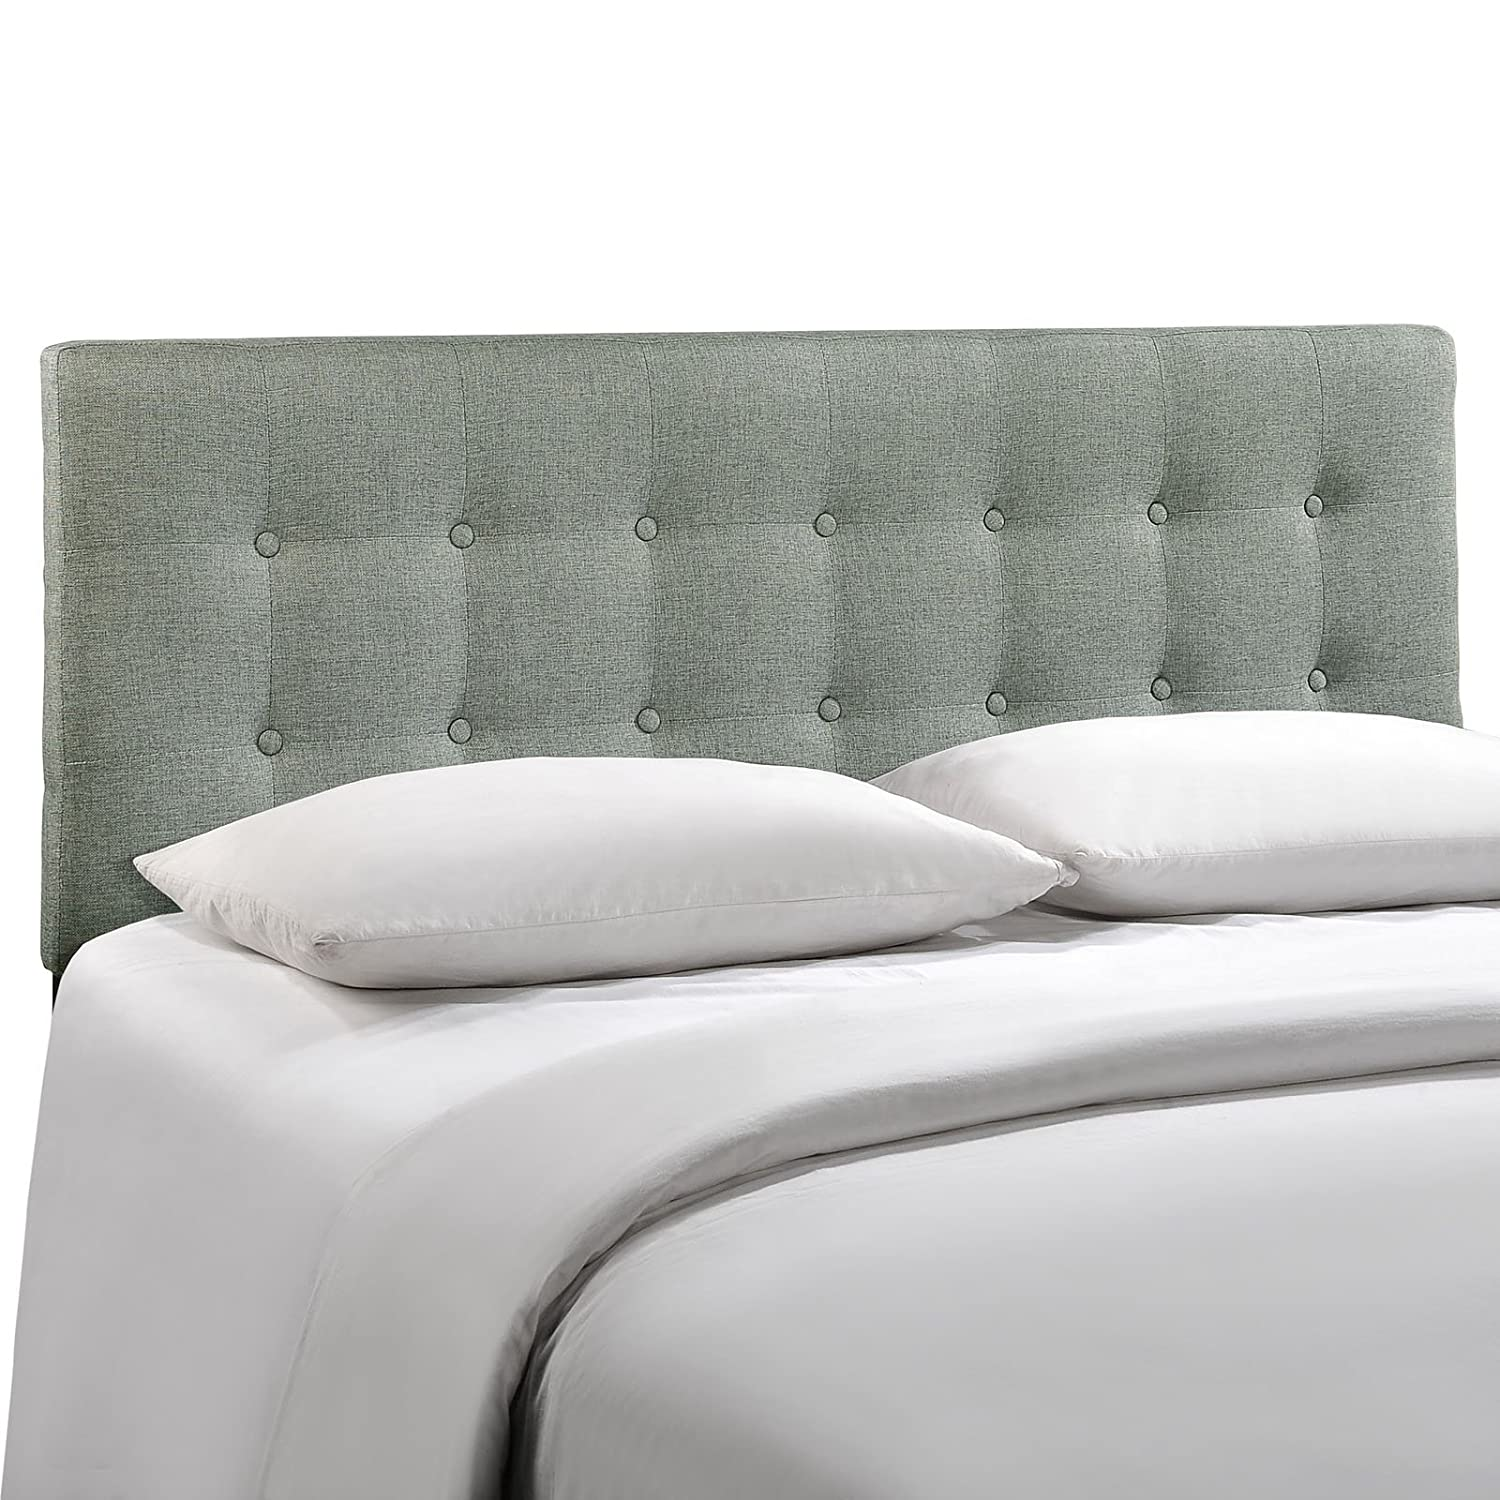 lgy grey headboard products classic in fabric dark hb com tufted sofamania josh